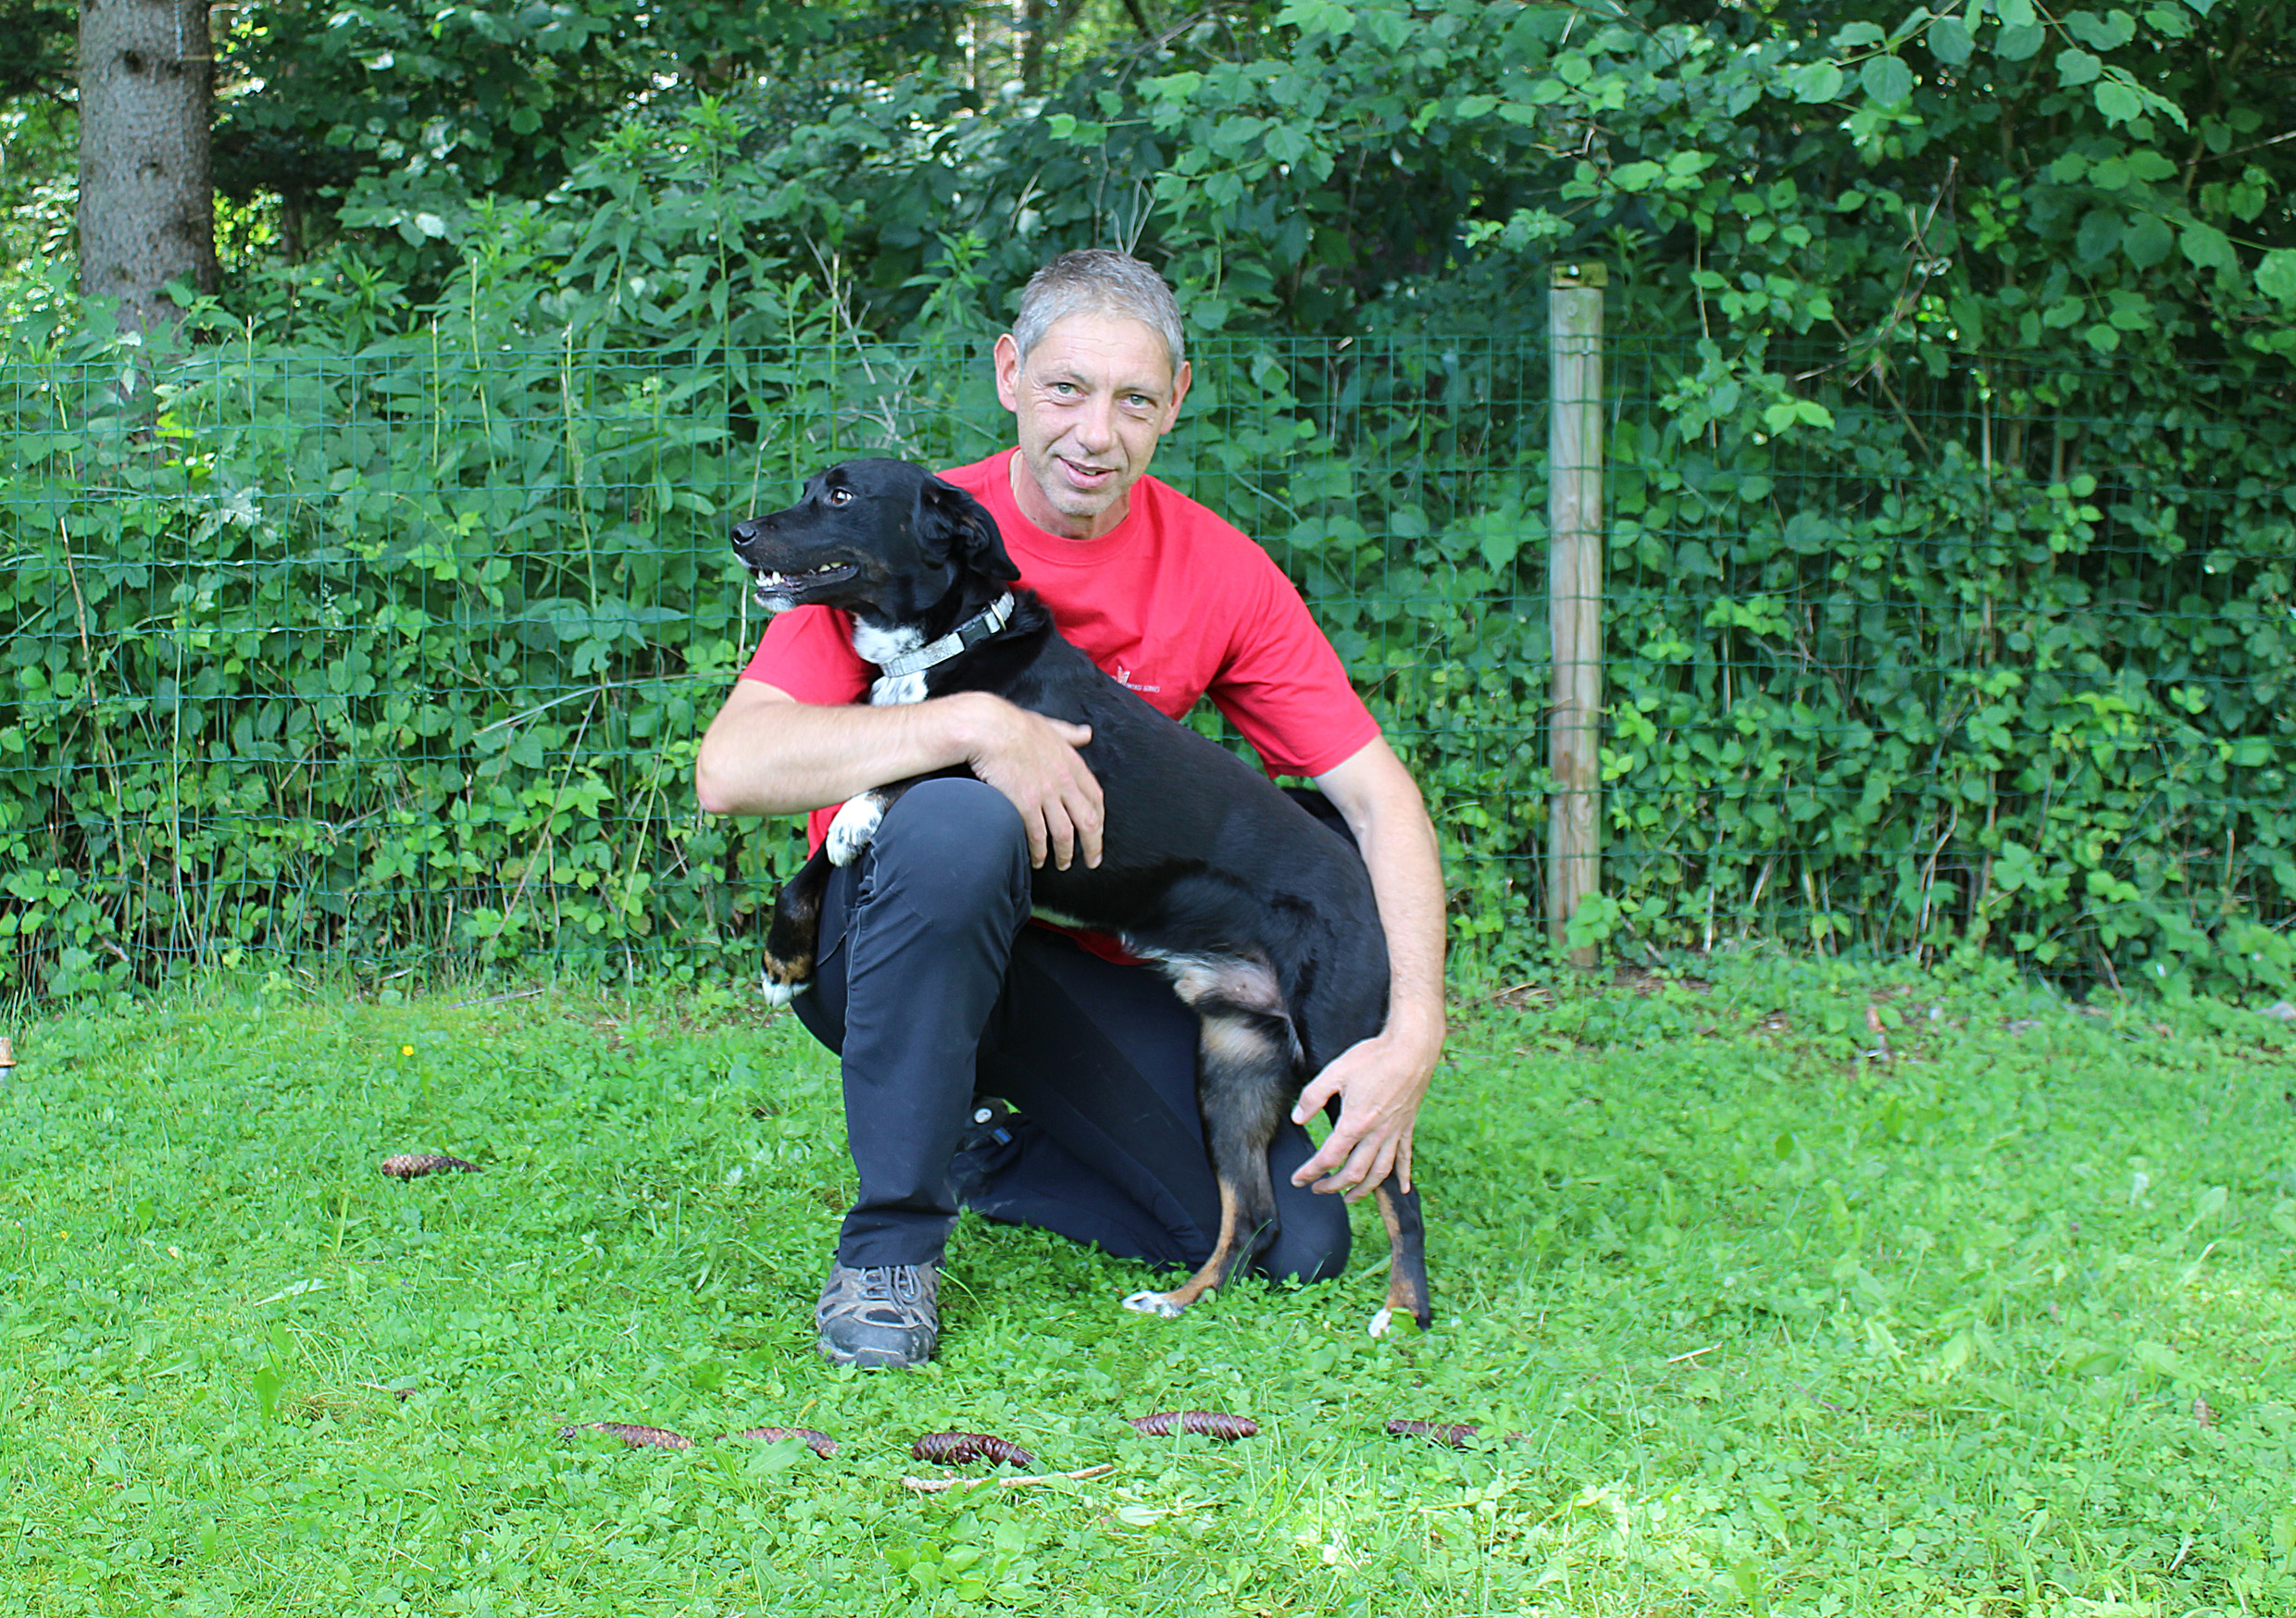 Trainer Hundesportverein Satteins-Walgau